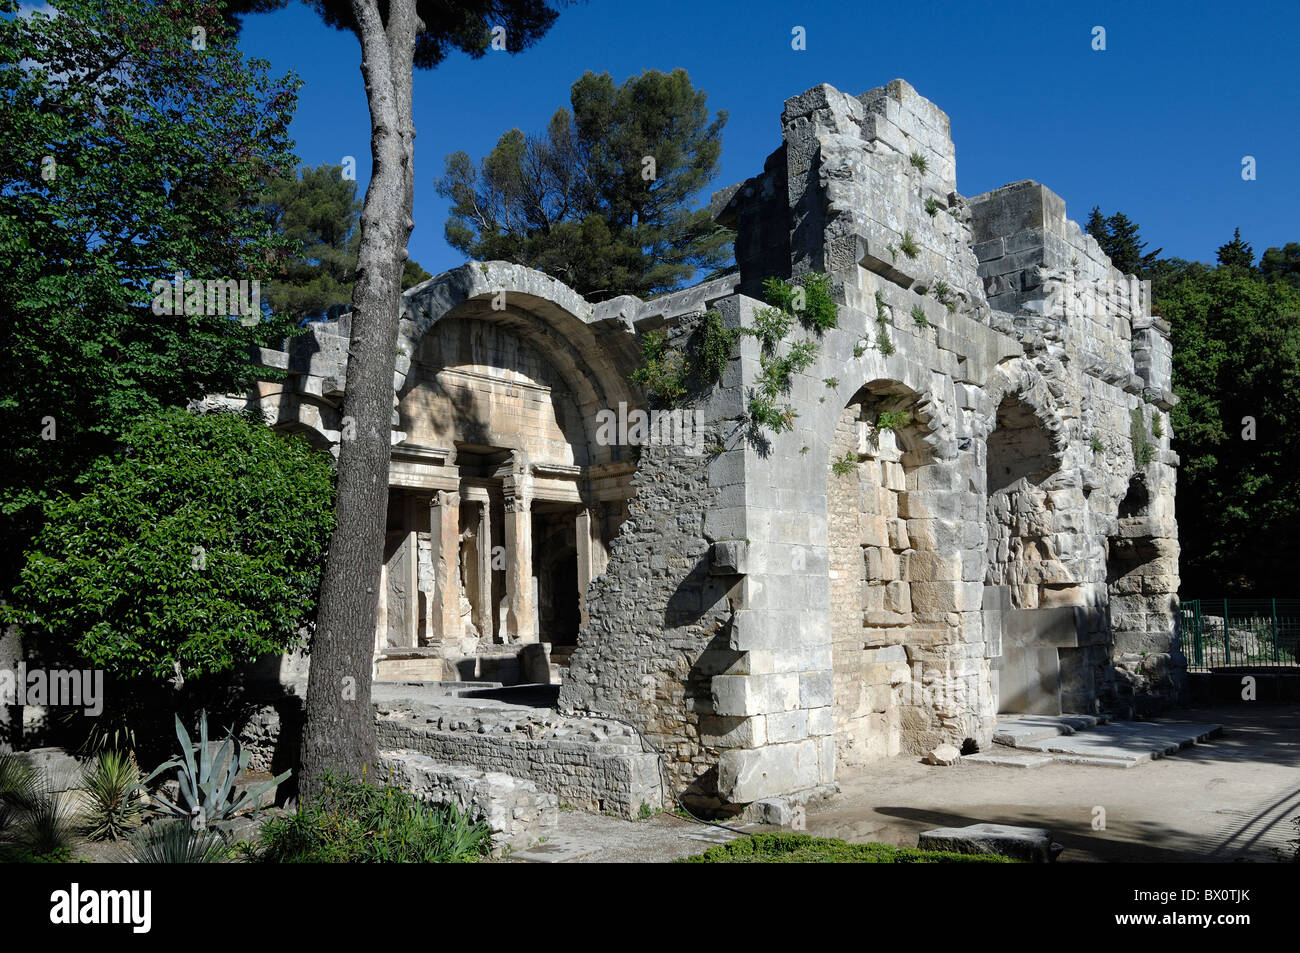 roman remains or ruins of the temple of diana jardin de la fontaine stock photo royalty free. Black Bedroom Furniture Sets. Home Design Ideas